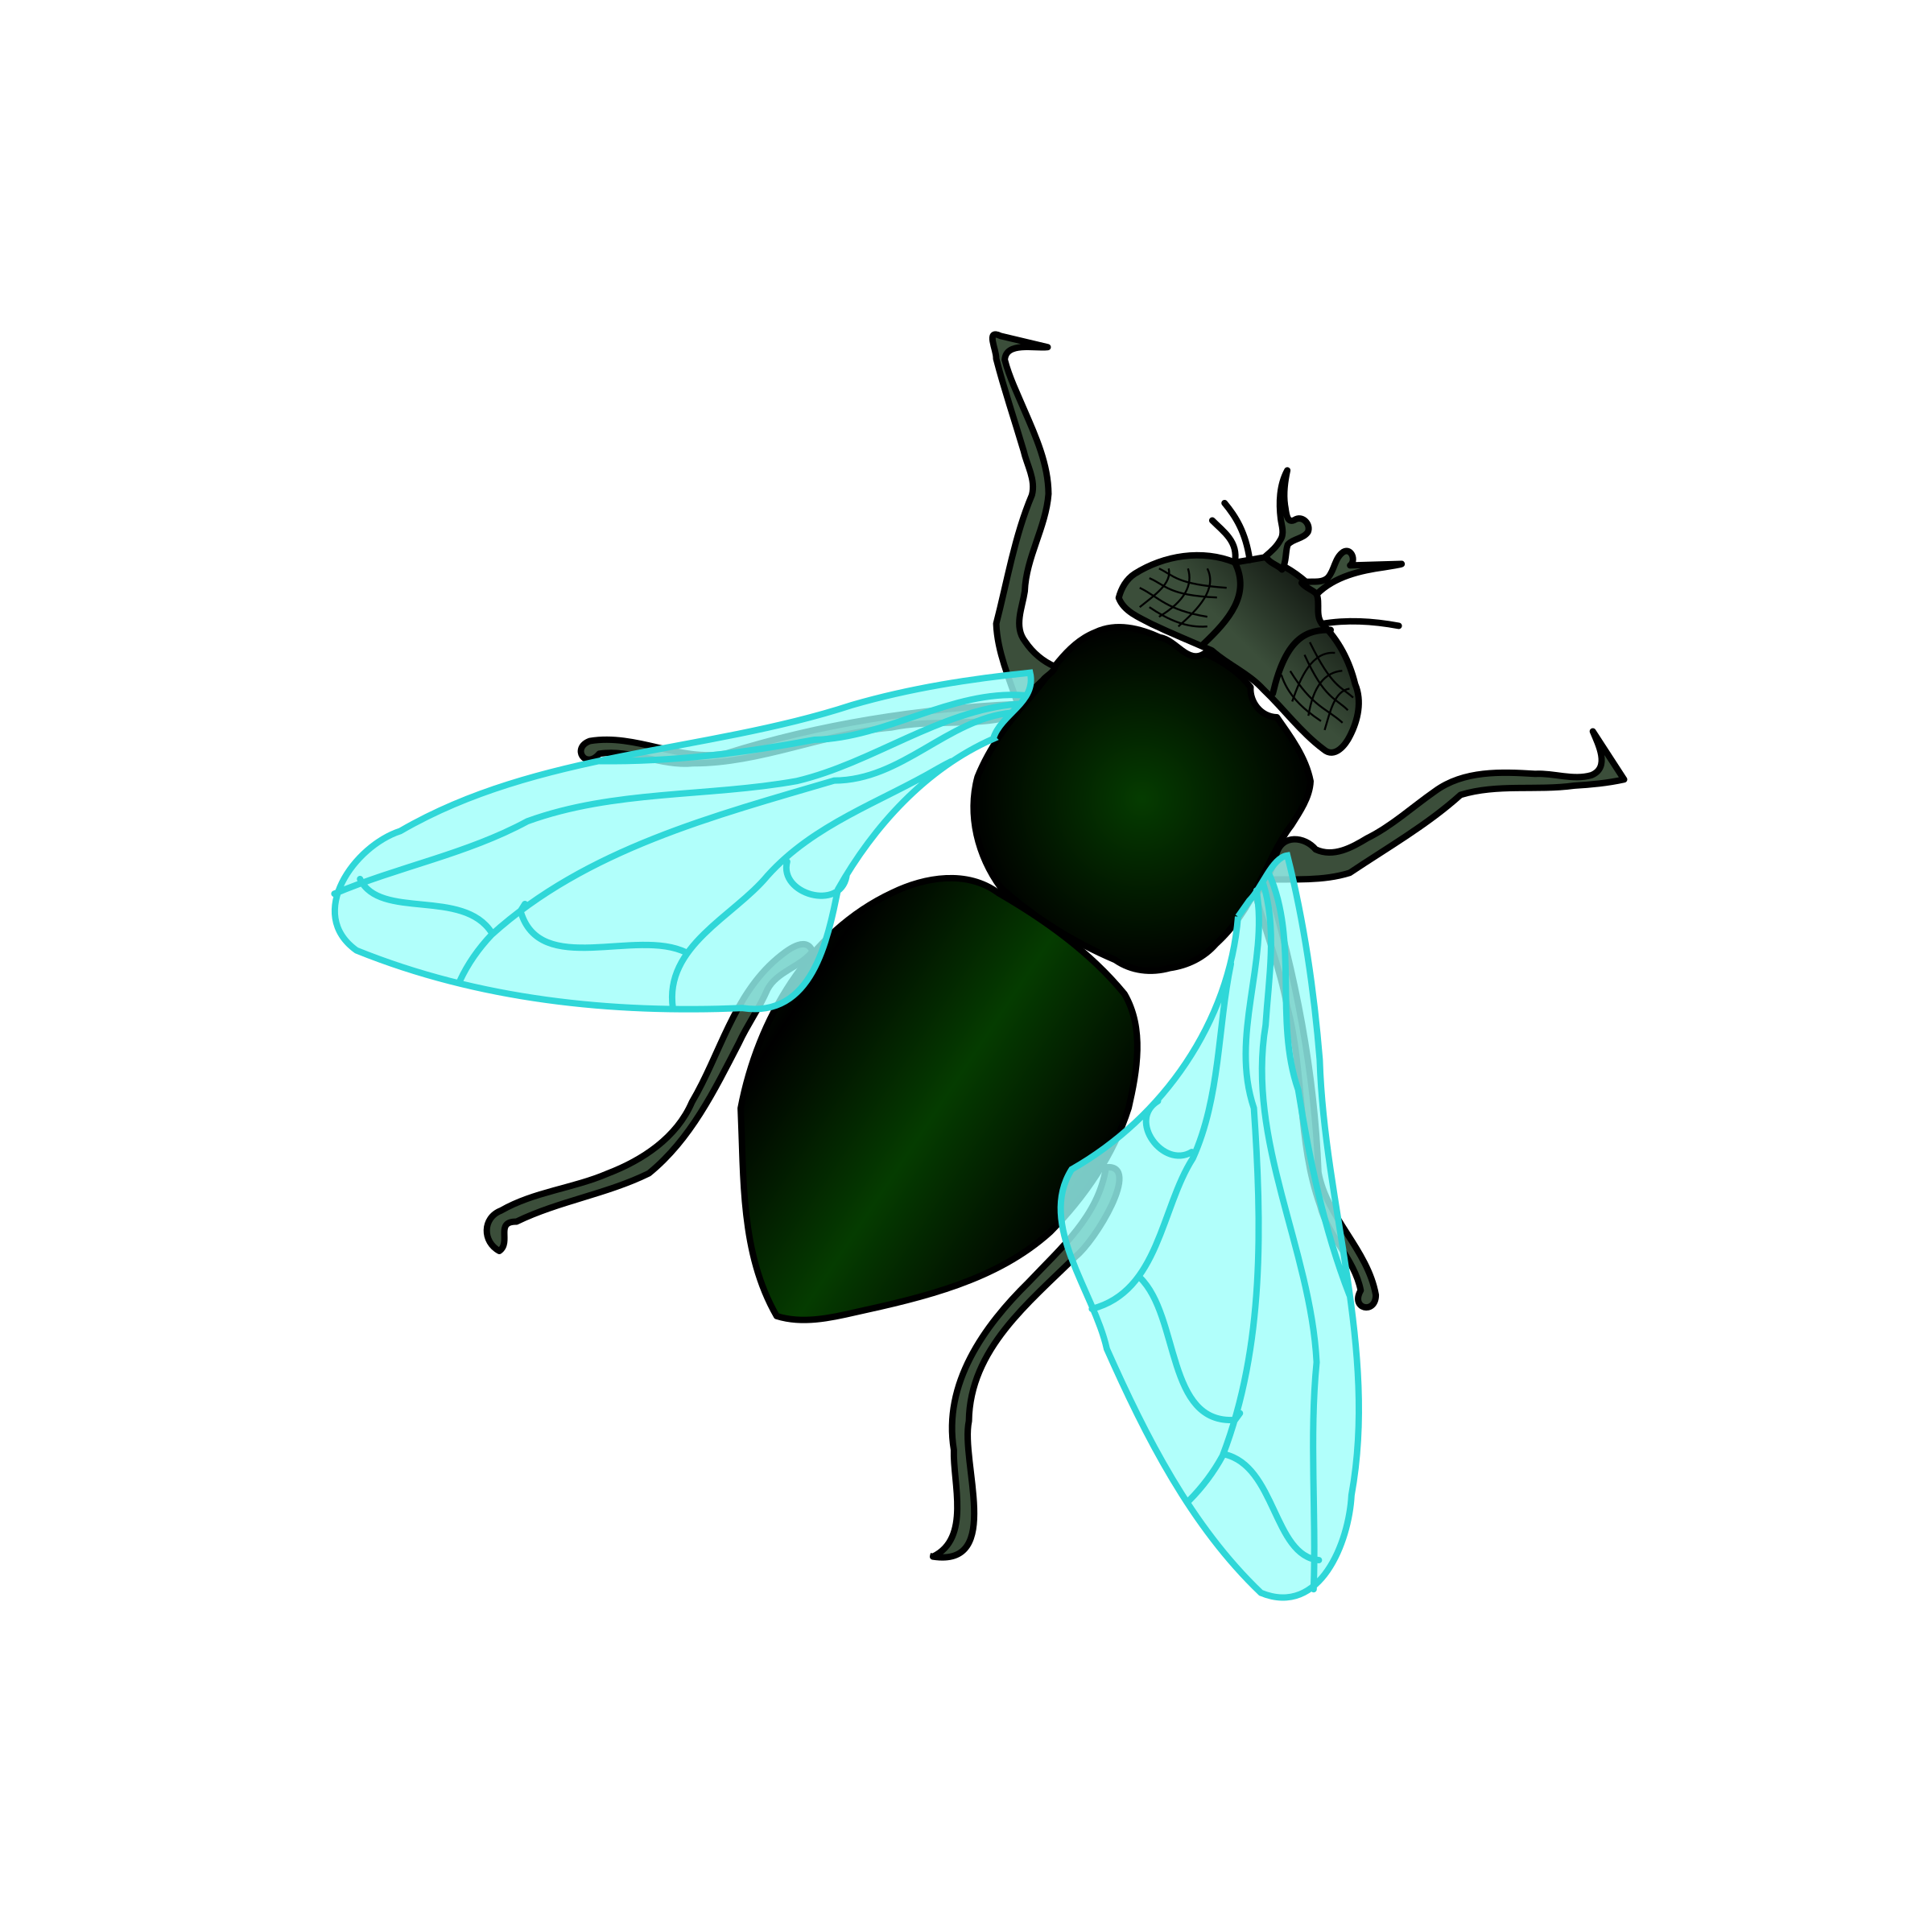 Bugs clipart house fly House House Green Clipart Green